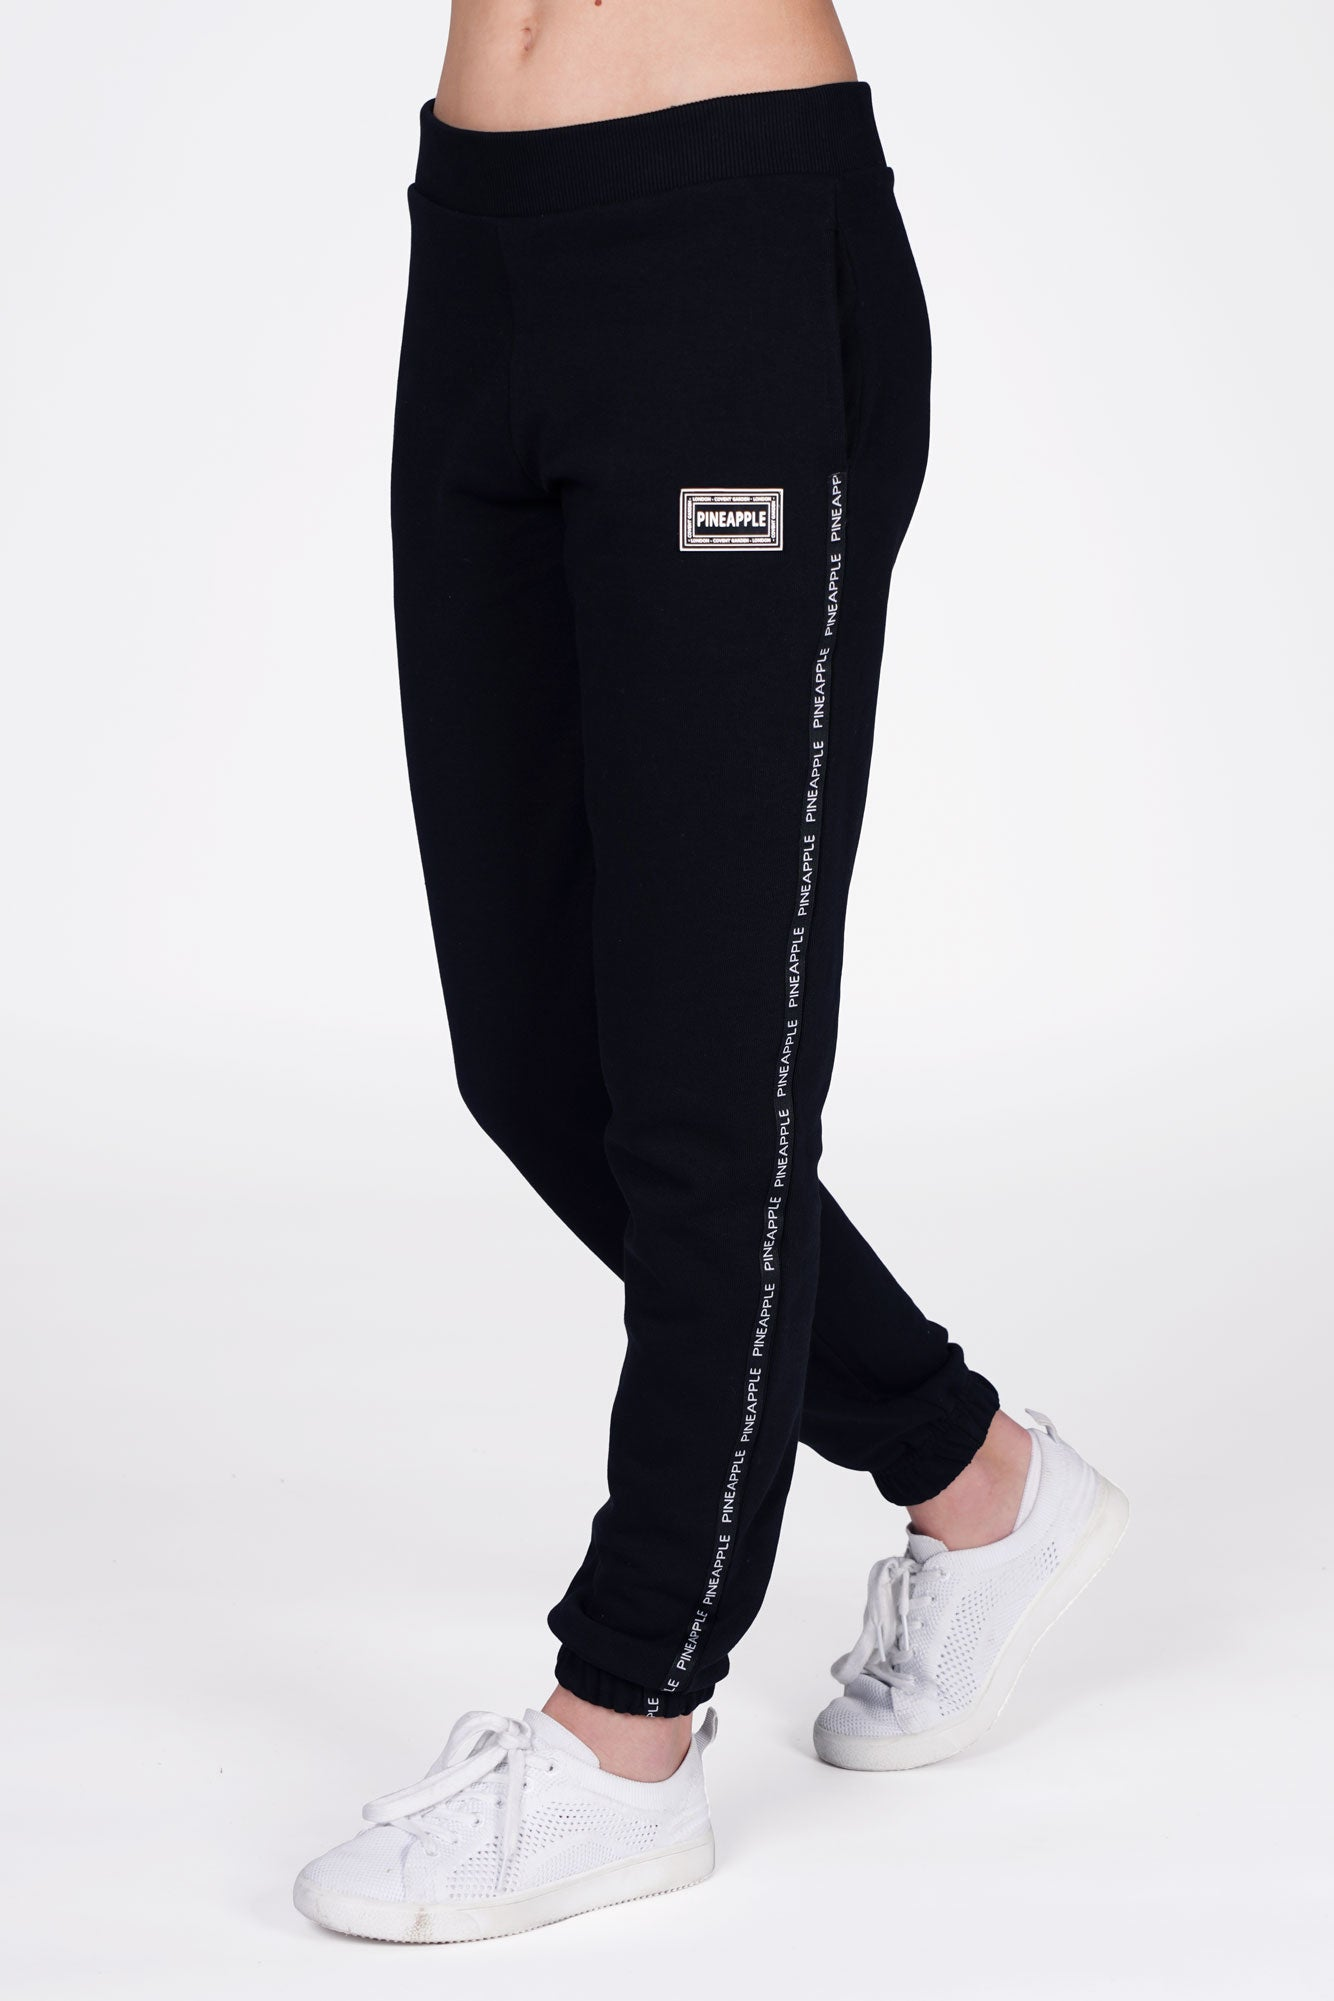 Girl wearing Pineapple Black Tape Joggers with white stripe, cropped side view